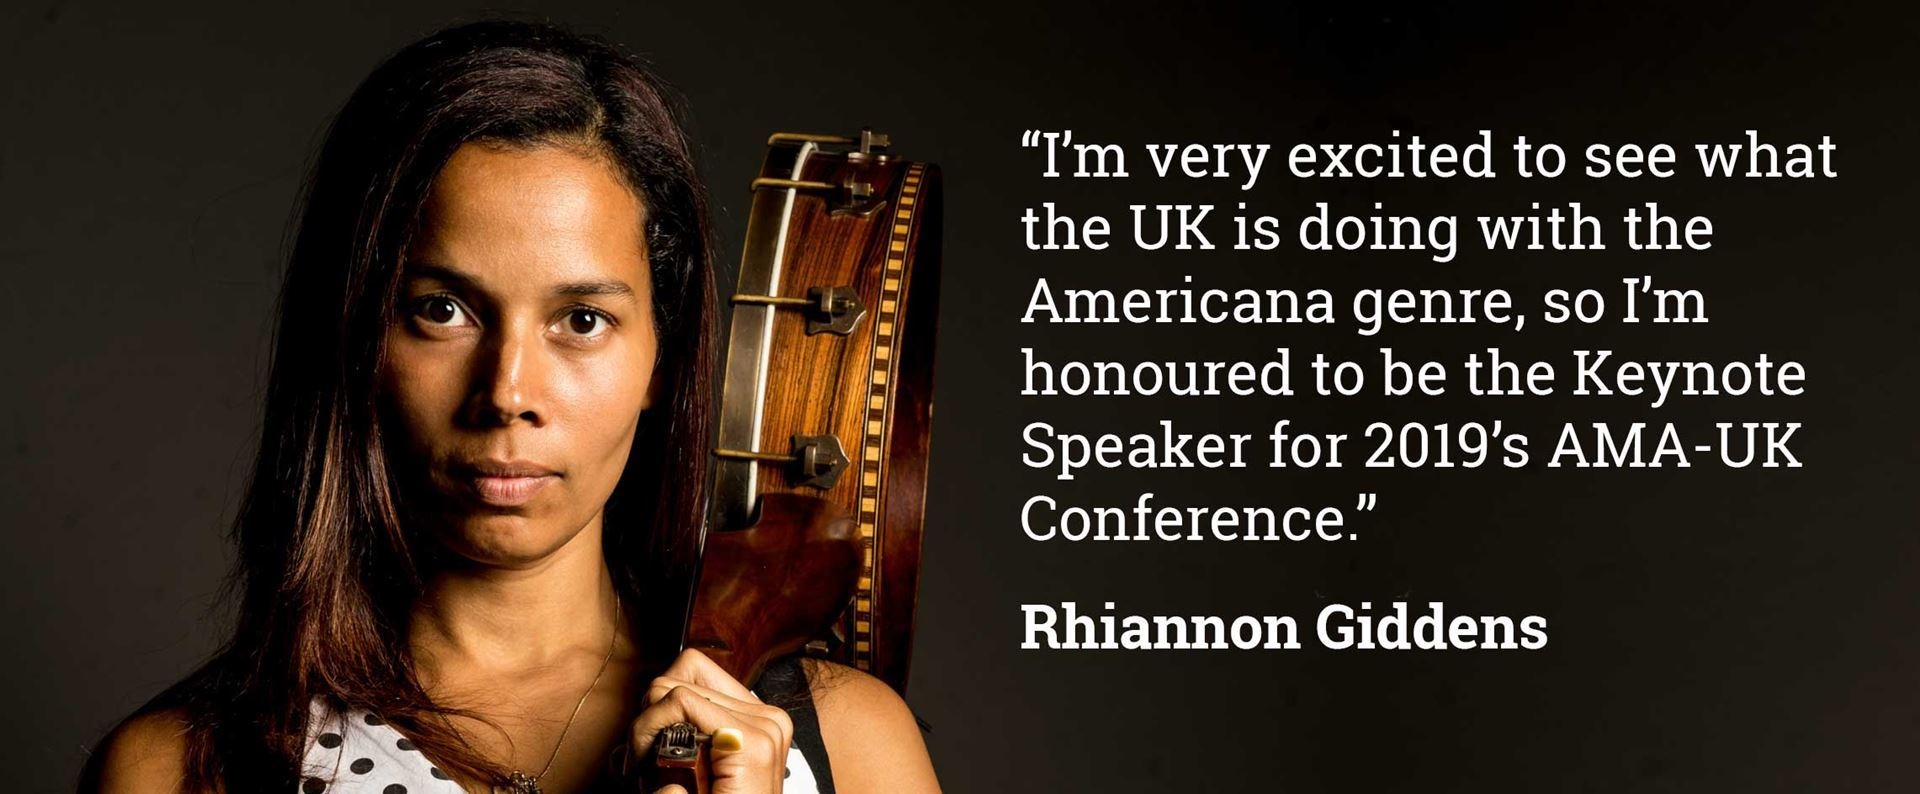 Rhiannon Giddens, keynote speaker at A.M.A.U.K. conference 2019.